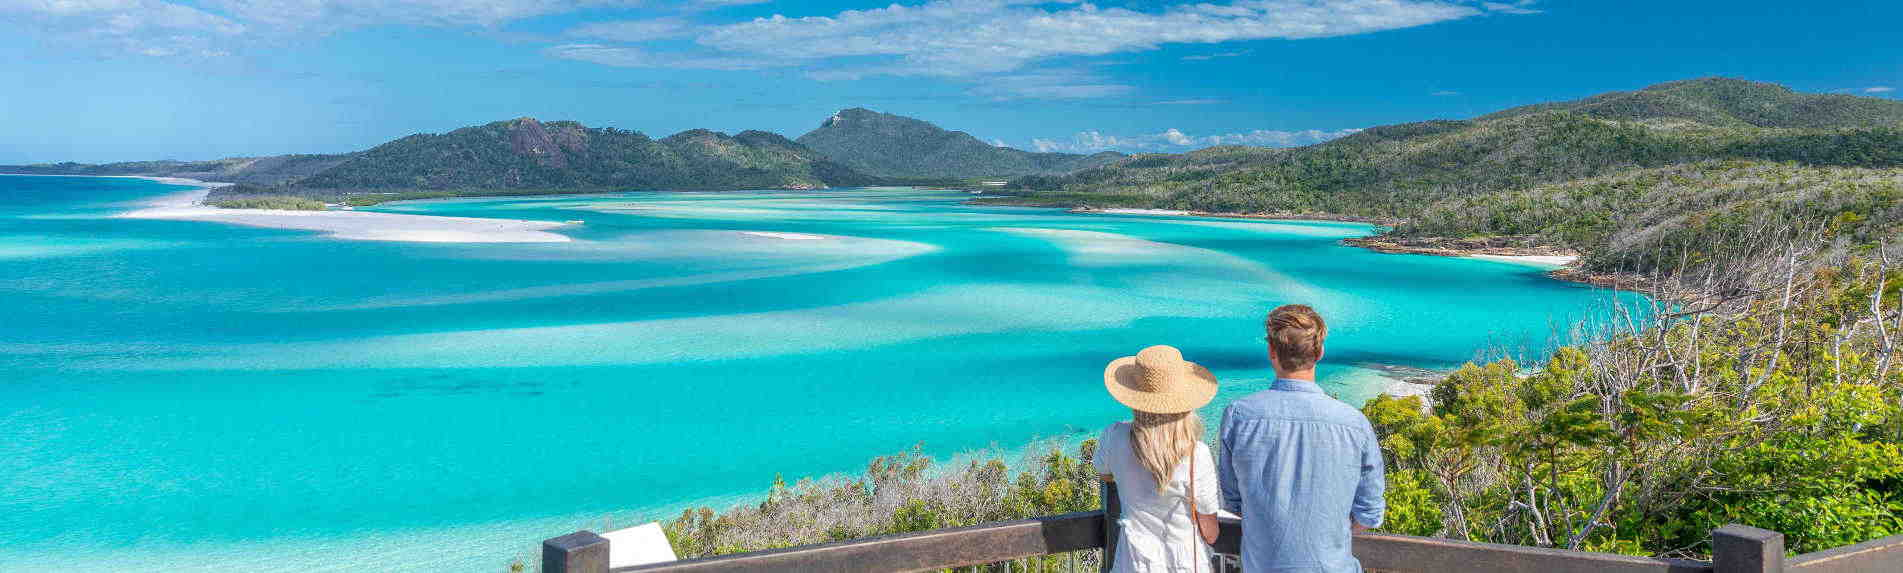 Whitsundays Tours